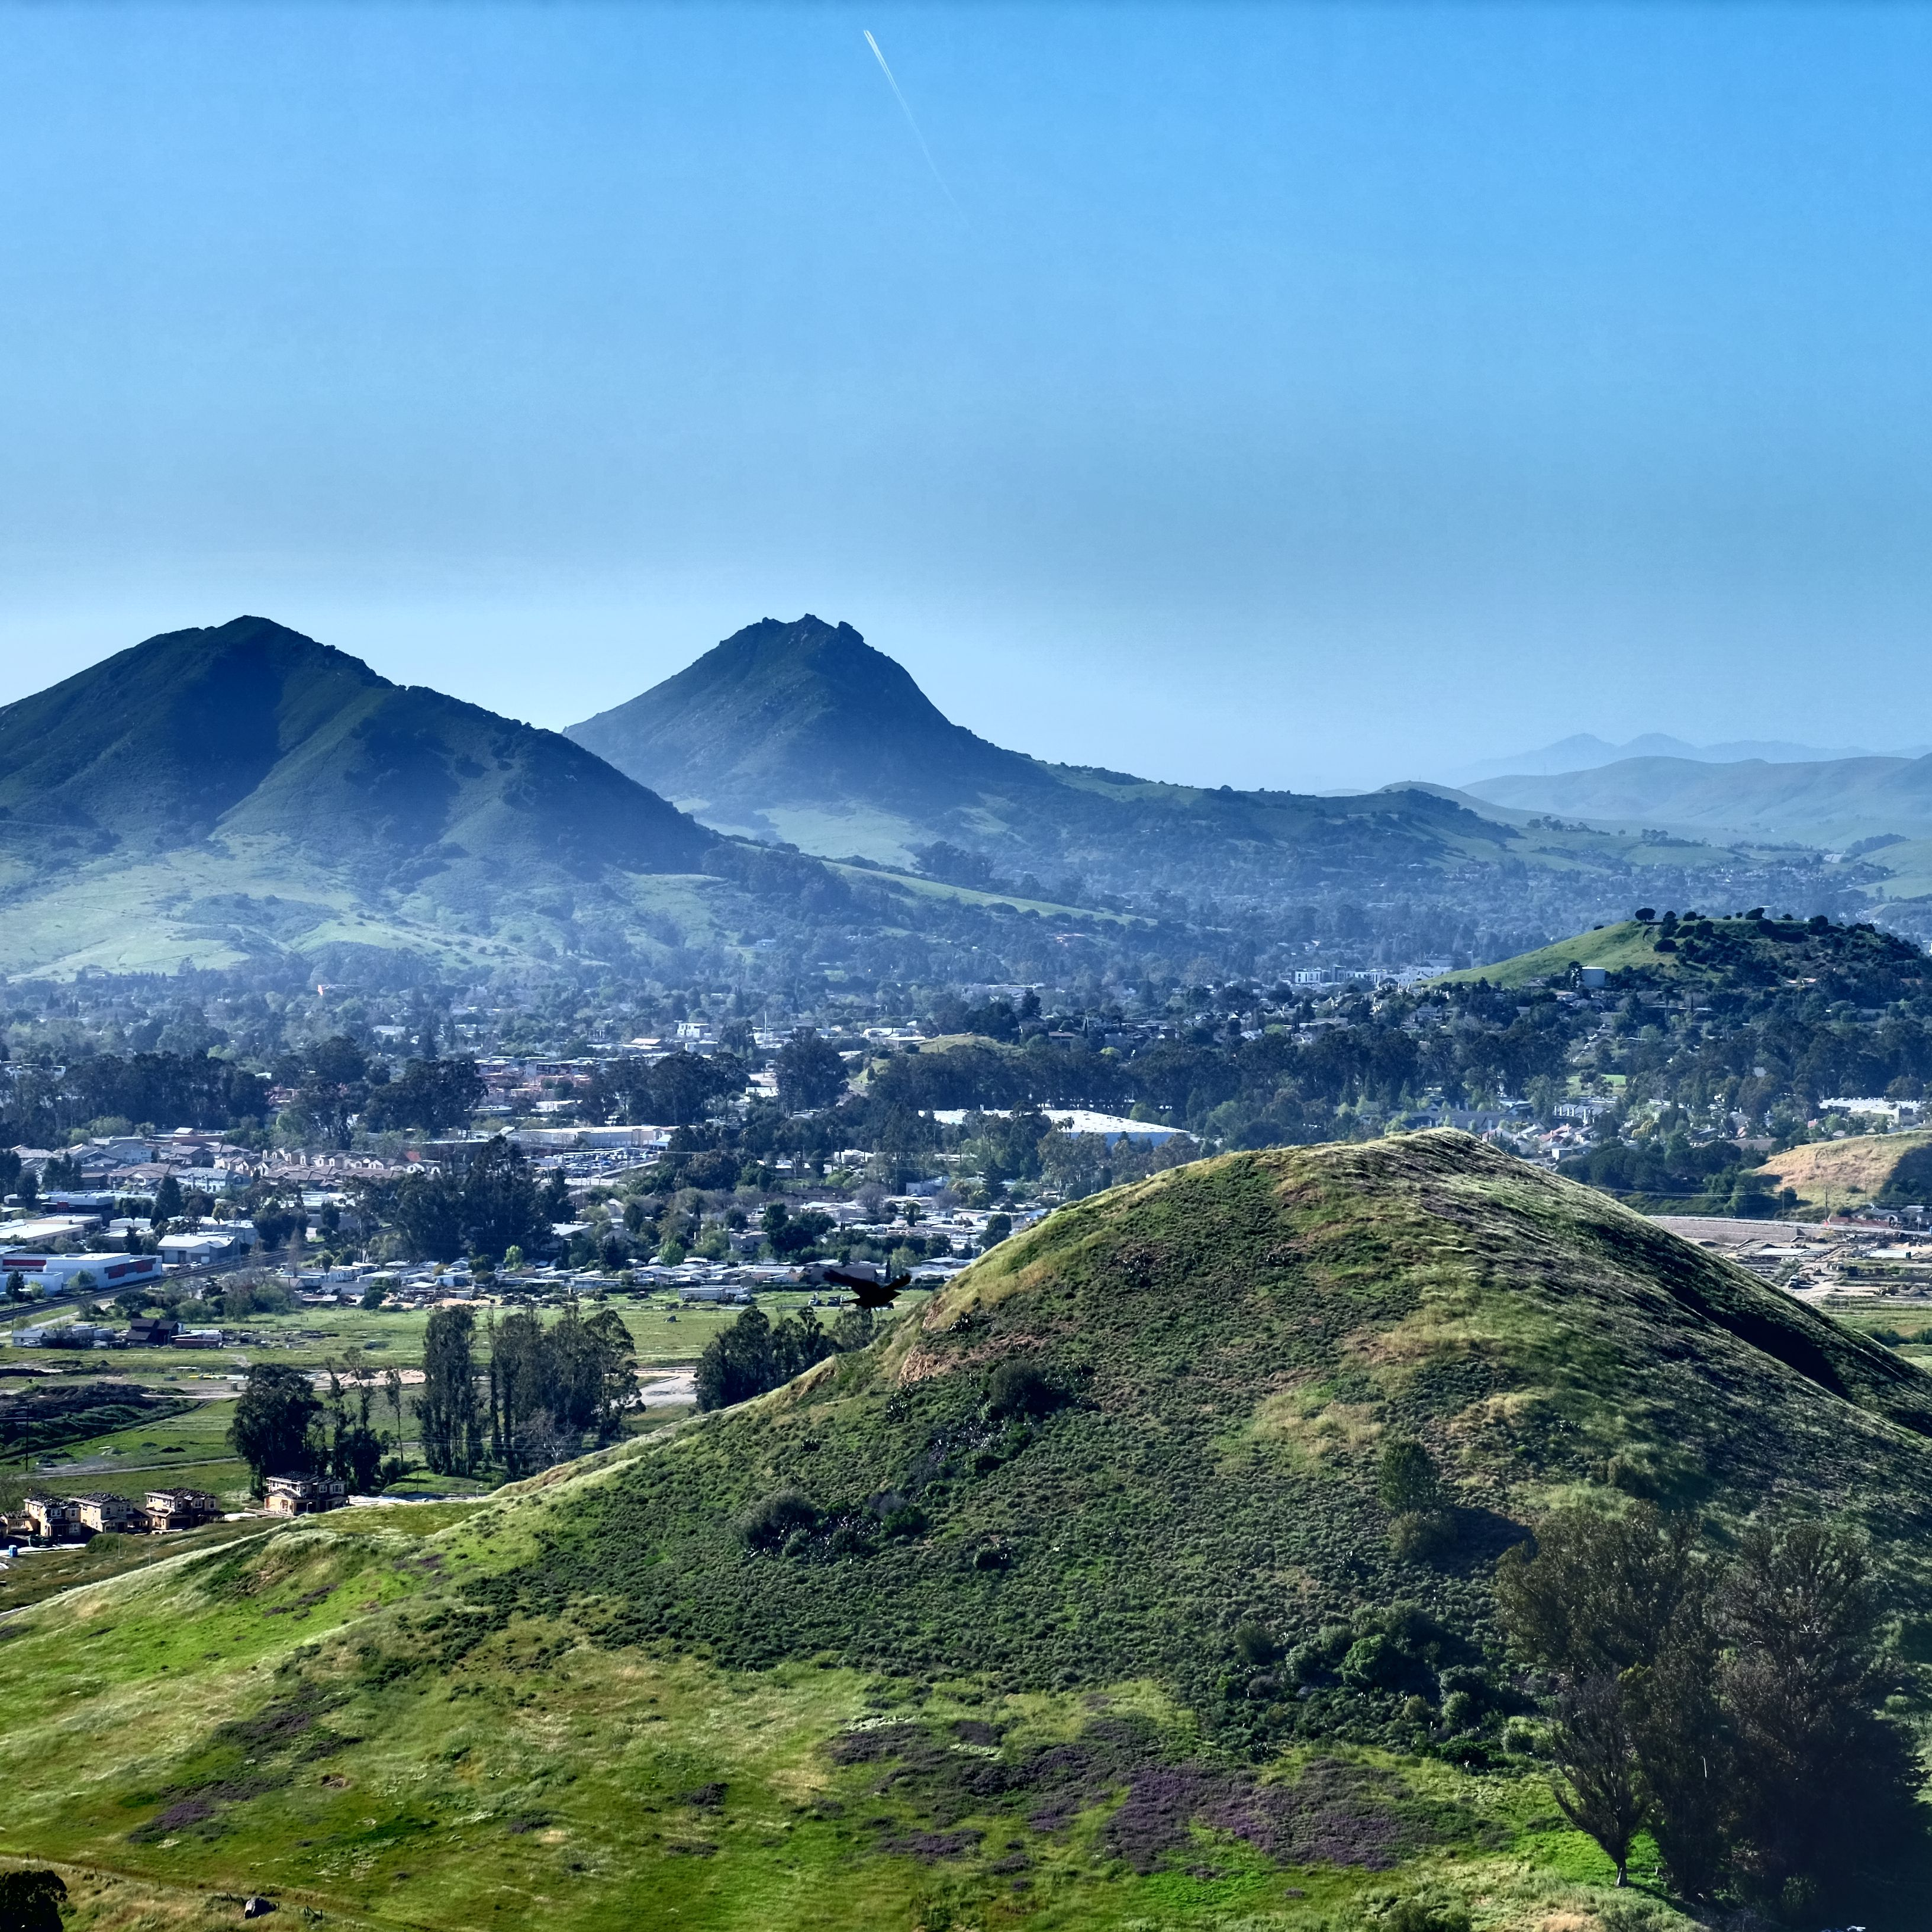 12 Things to Do in San Luis Obispo